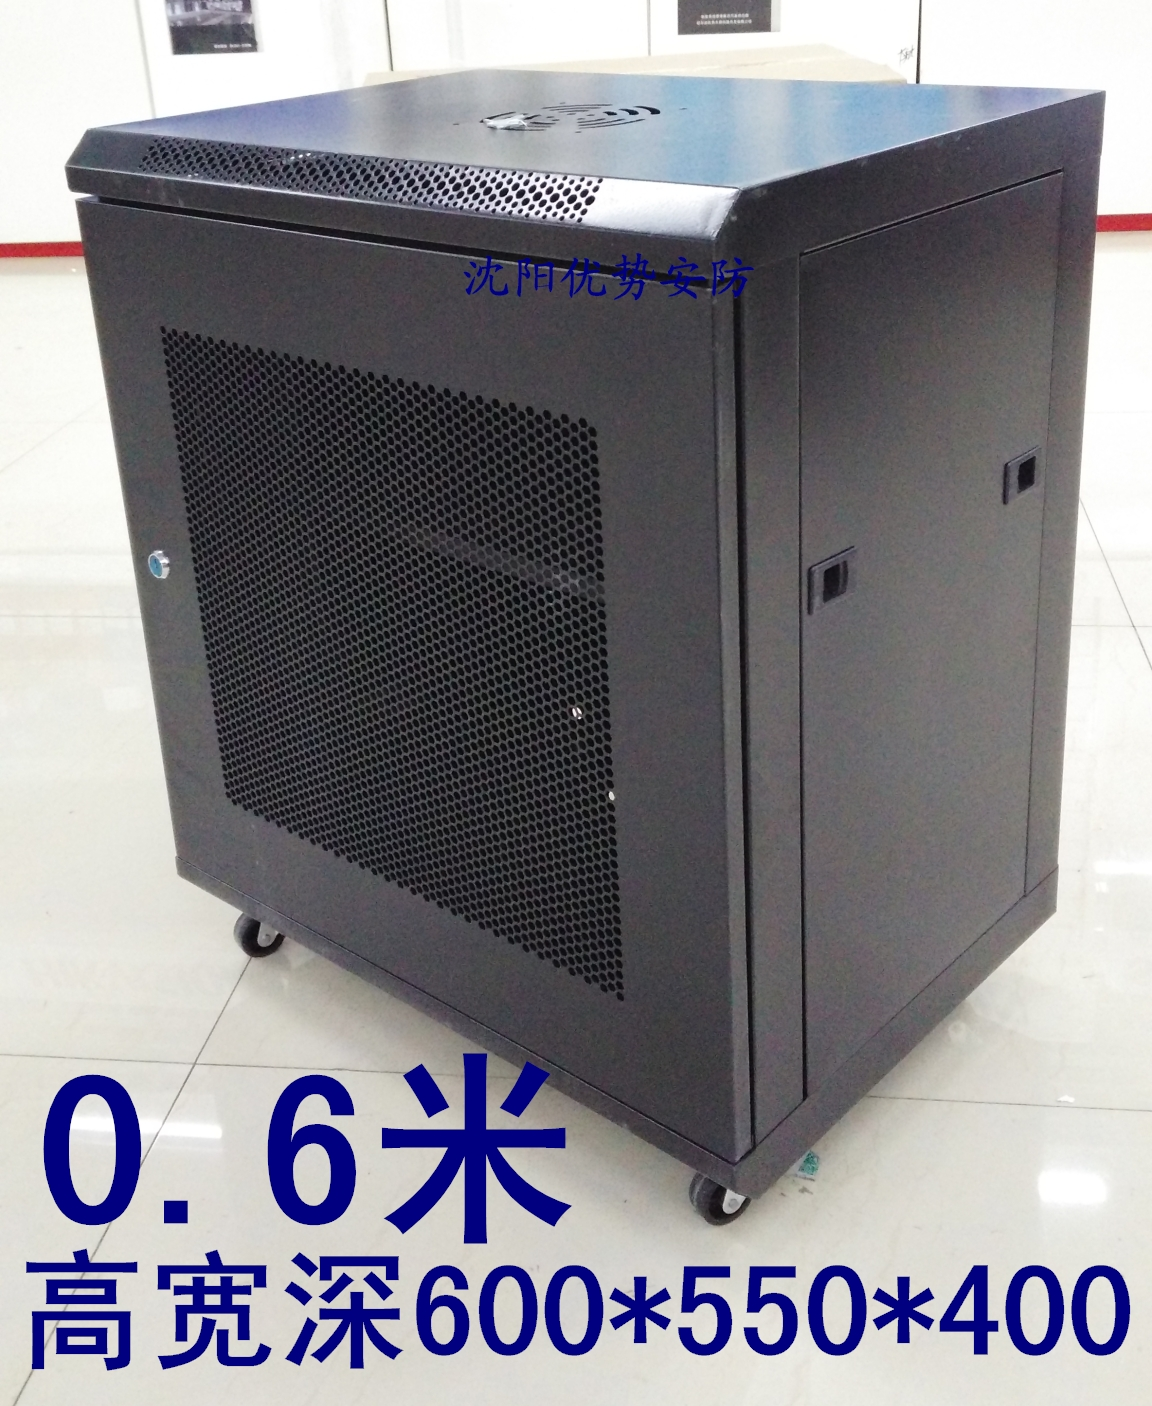 Network Cabinet 0.6m 12U550*400 Cabinet Wall Gate Switch Cabinet Weak Monitoring Cabinet